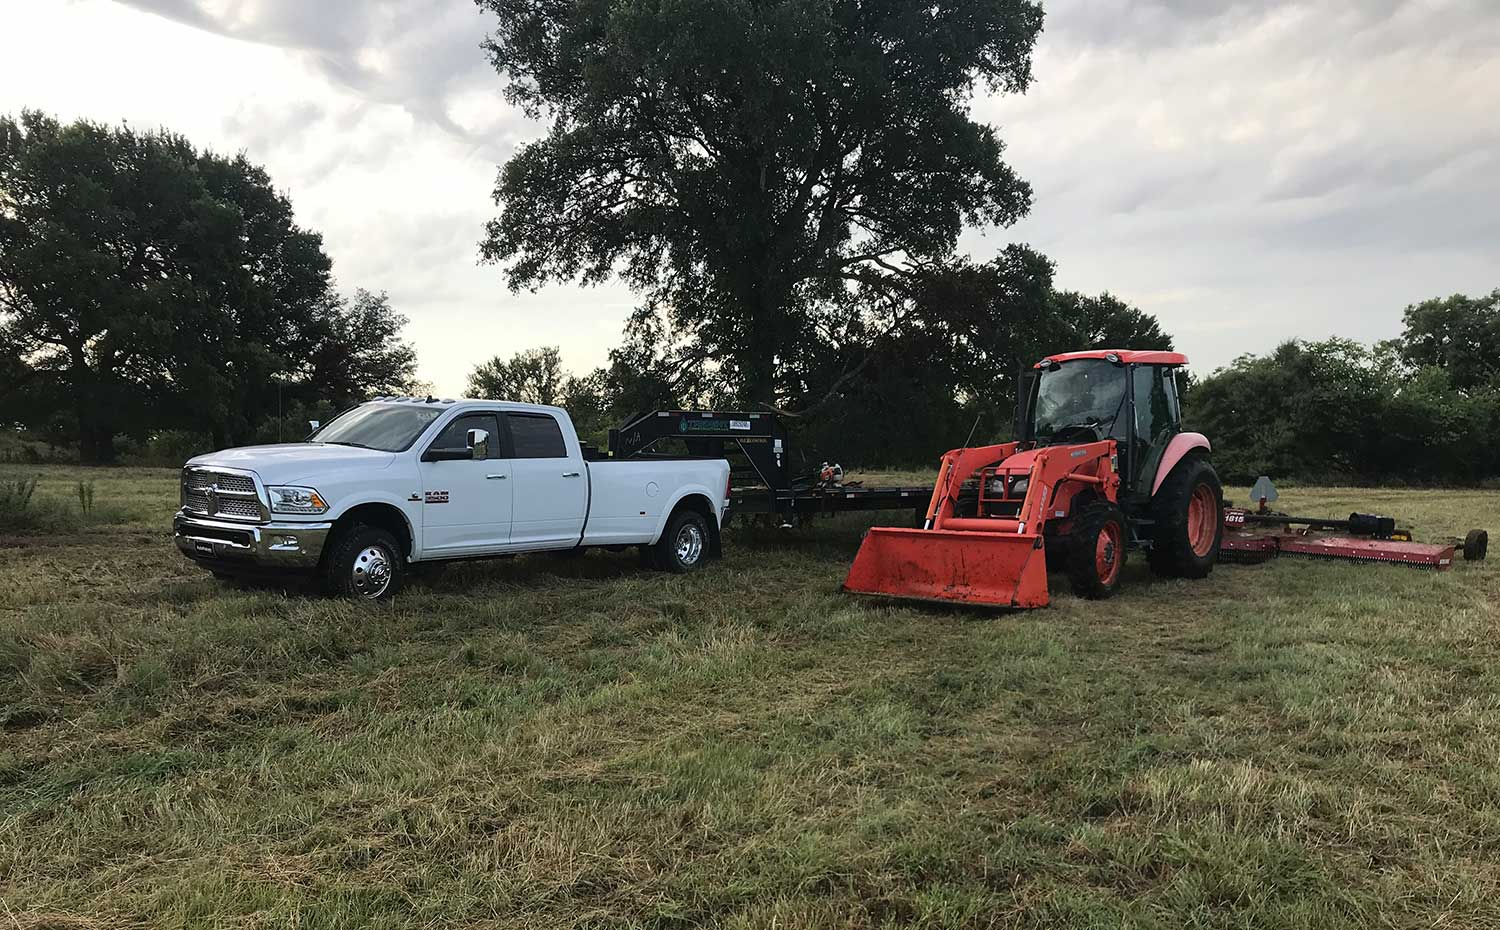 What do you look for in a lot mowing service?